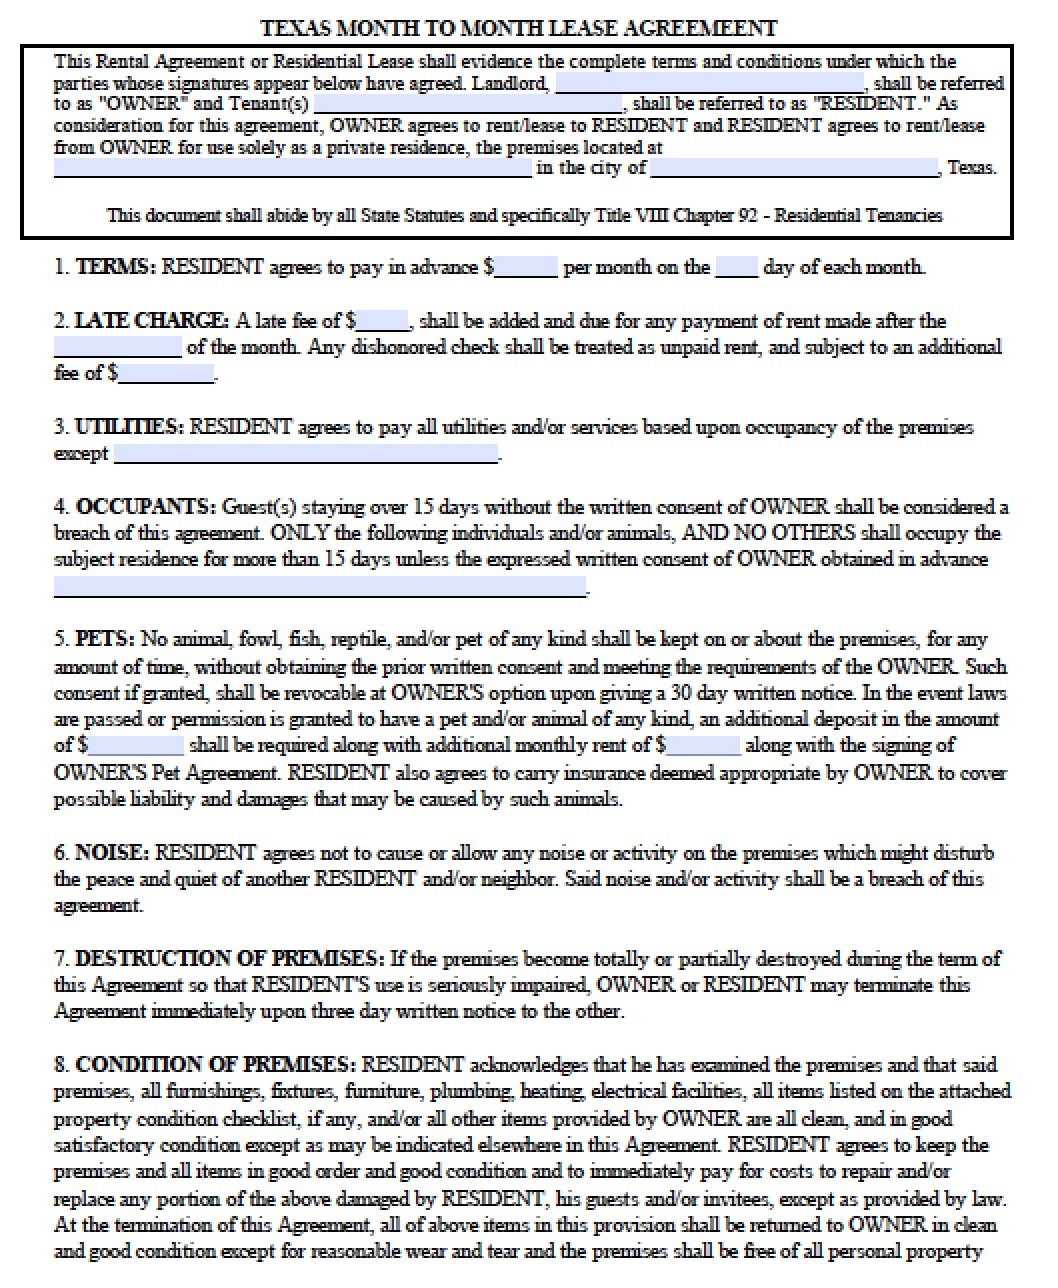 Free Texas Month To Month Lease Agreement Template Pdf